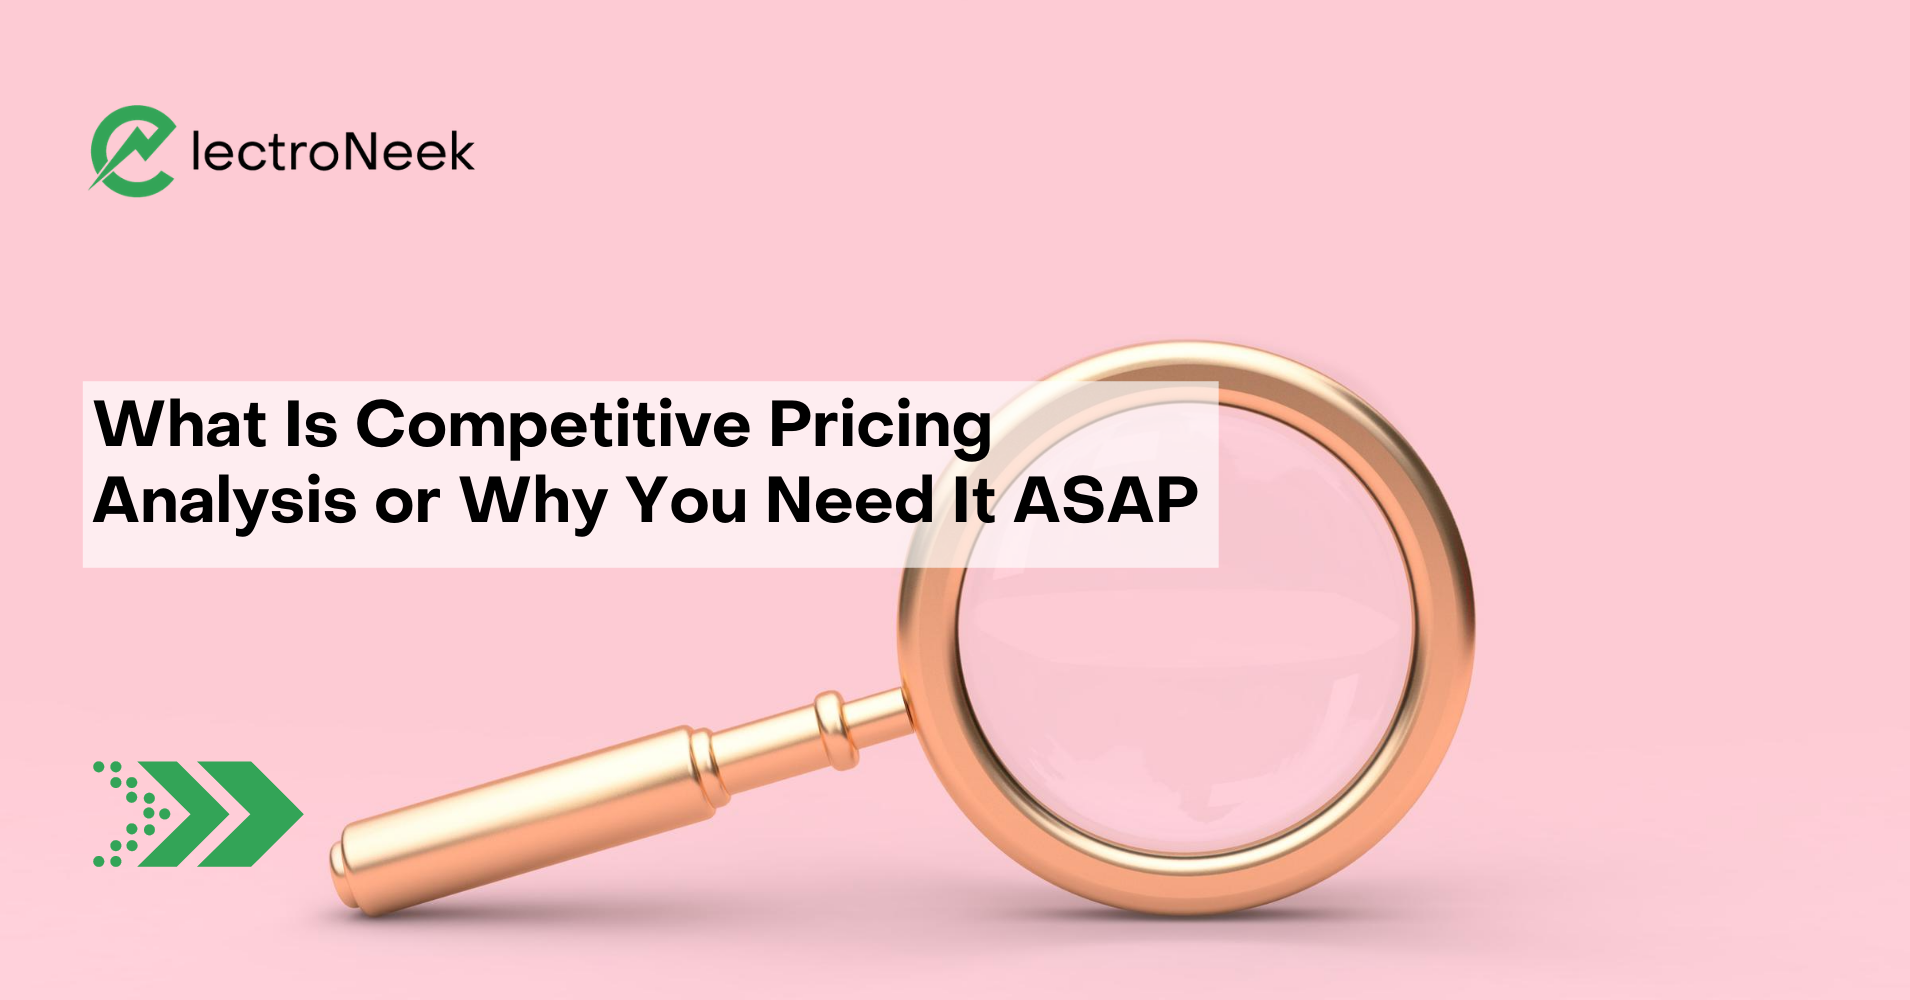 What Is Competitive Pricing Analysis or Why You Need It ASAP